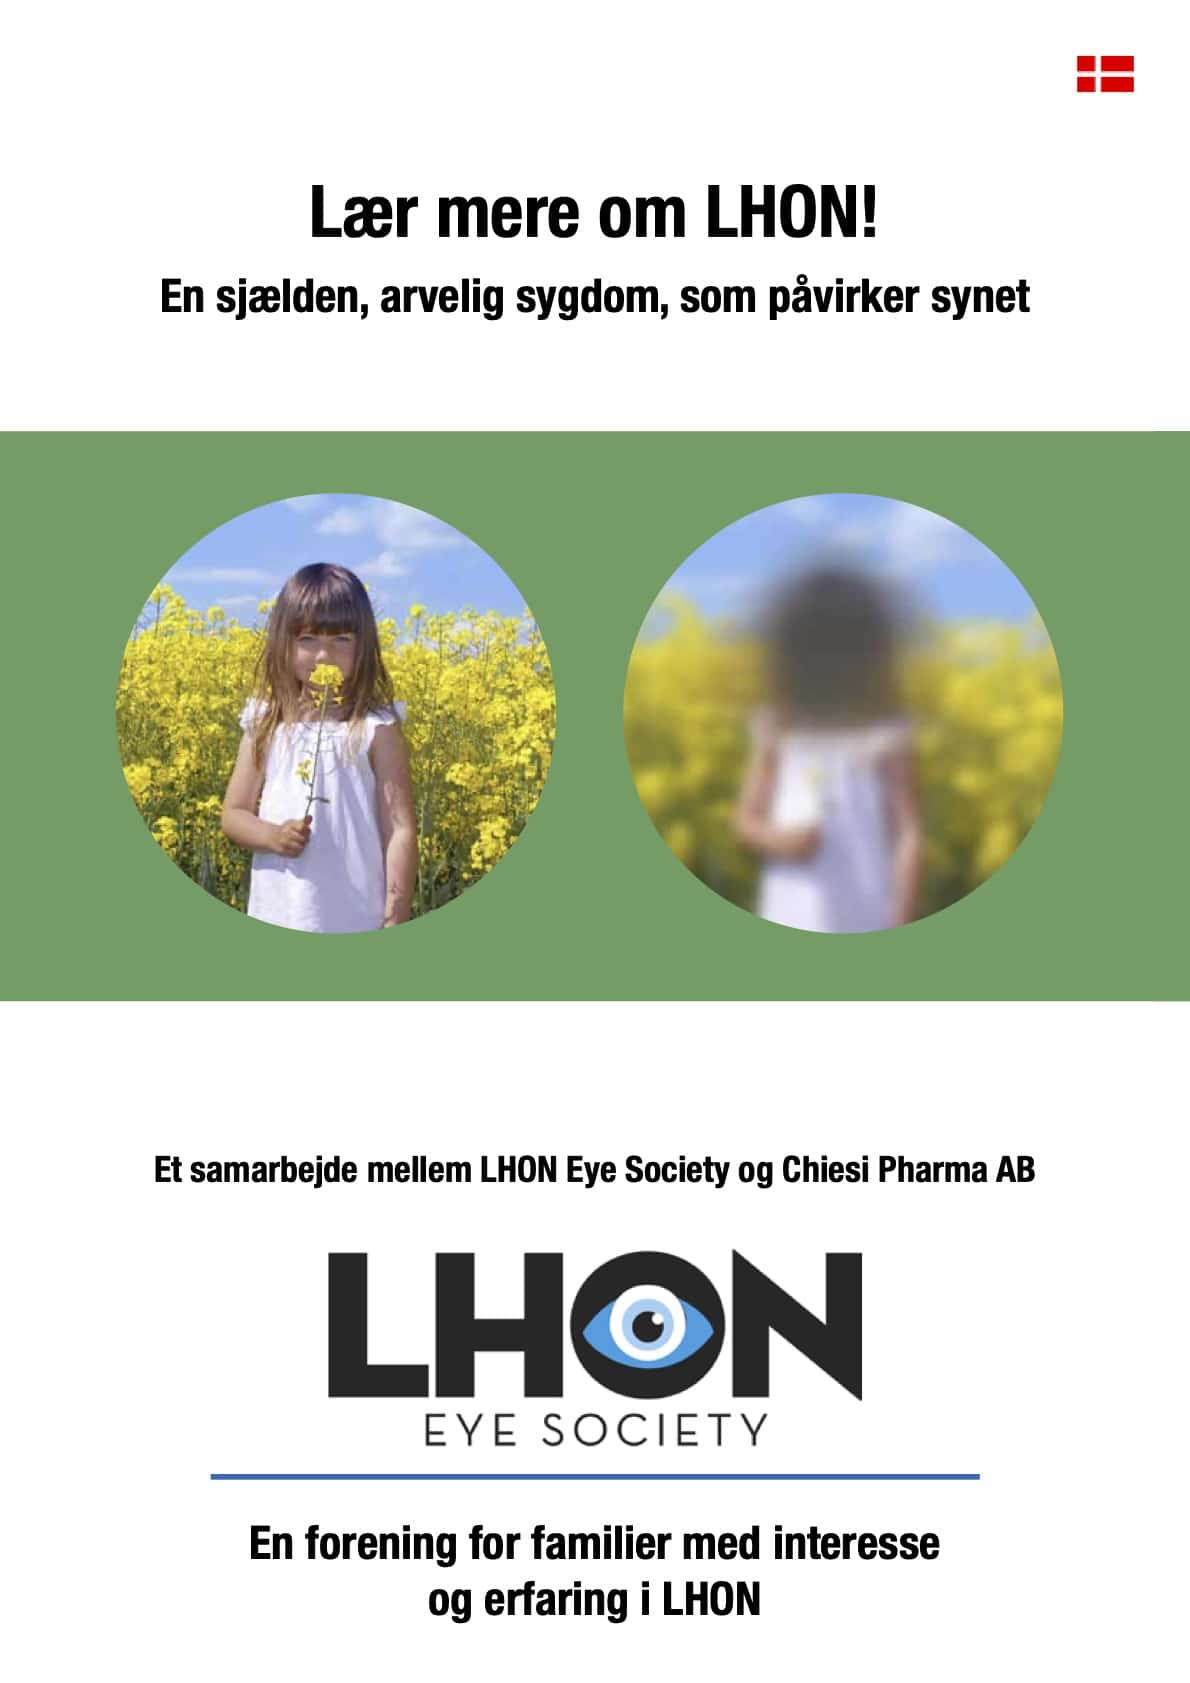 cover image for brochure about LHON in Danish